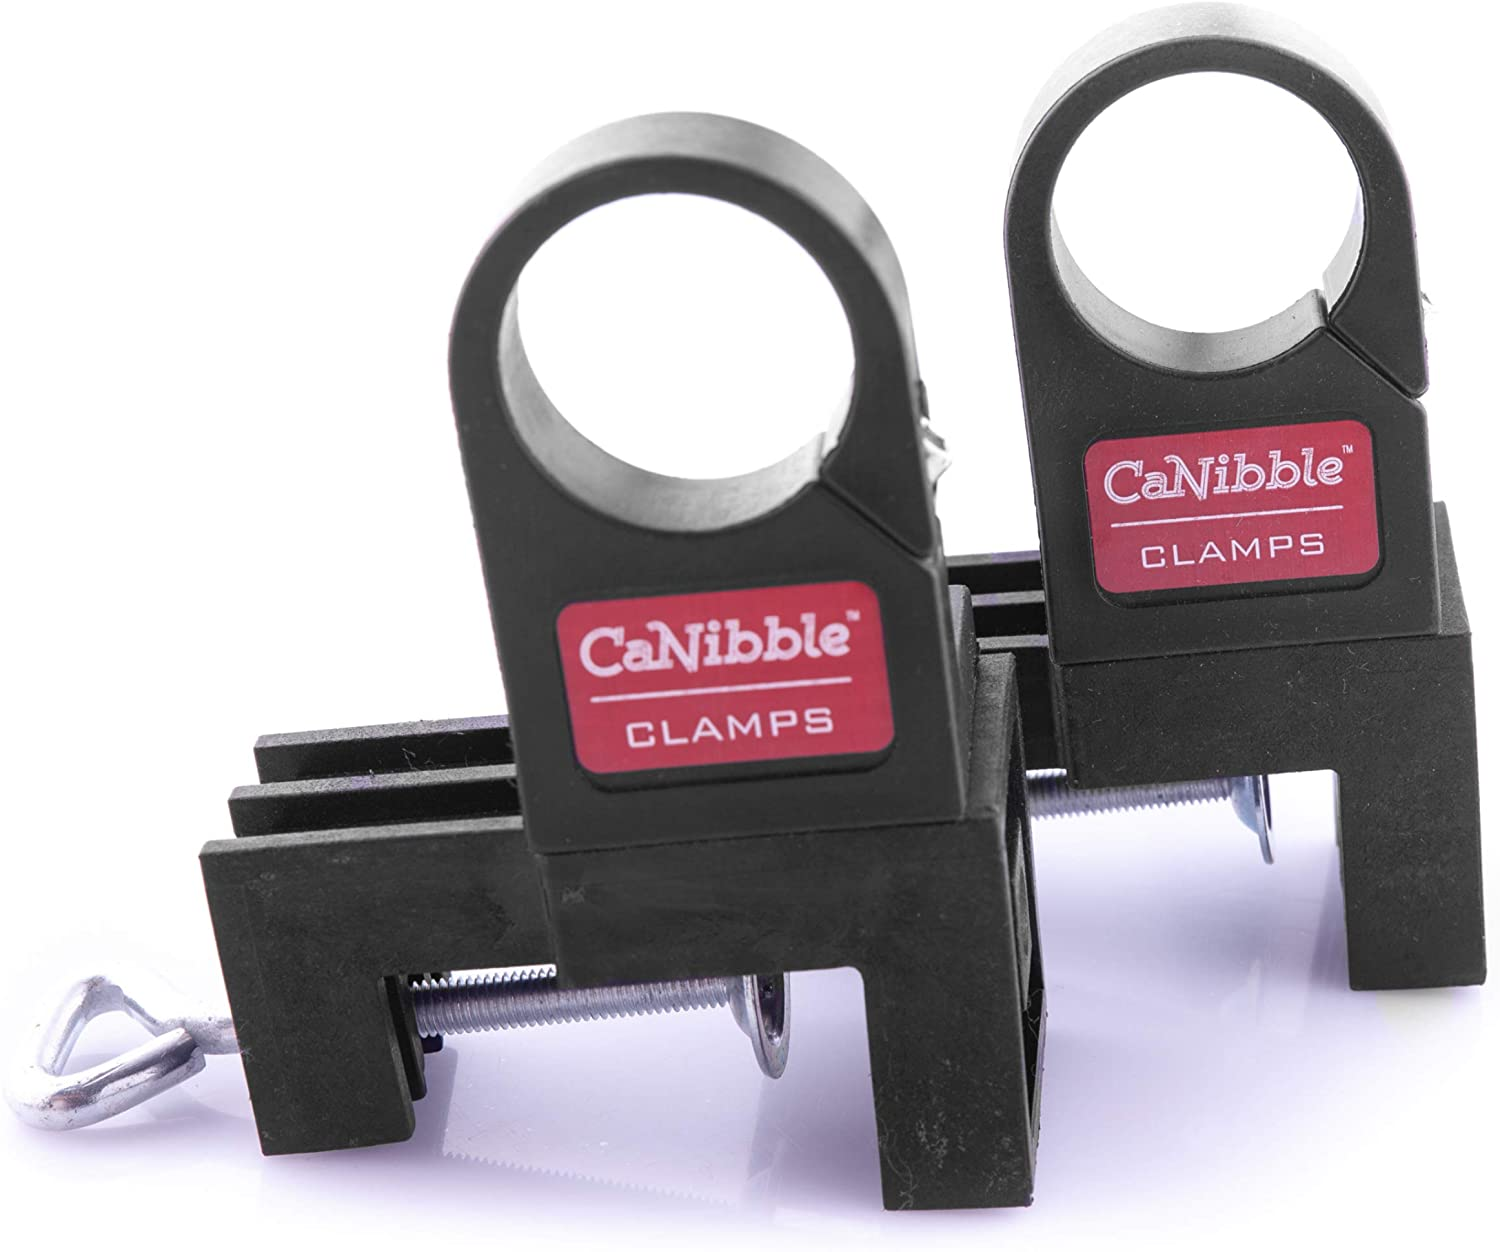 CaNibble Bench Mounting Clamps. Drill Bench Clamps. Mounts Drills and CaNibble's Nibbler to your Bench Top. Frees Your Hands For More Controlled Cutting.